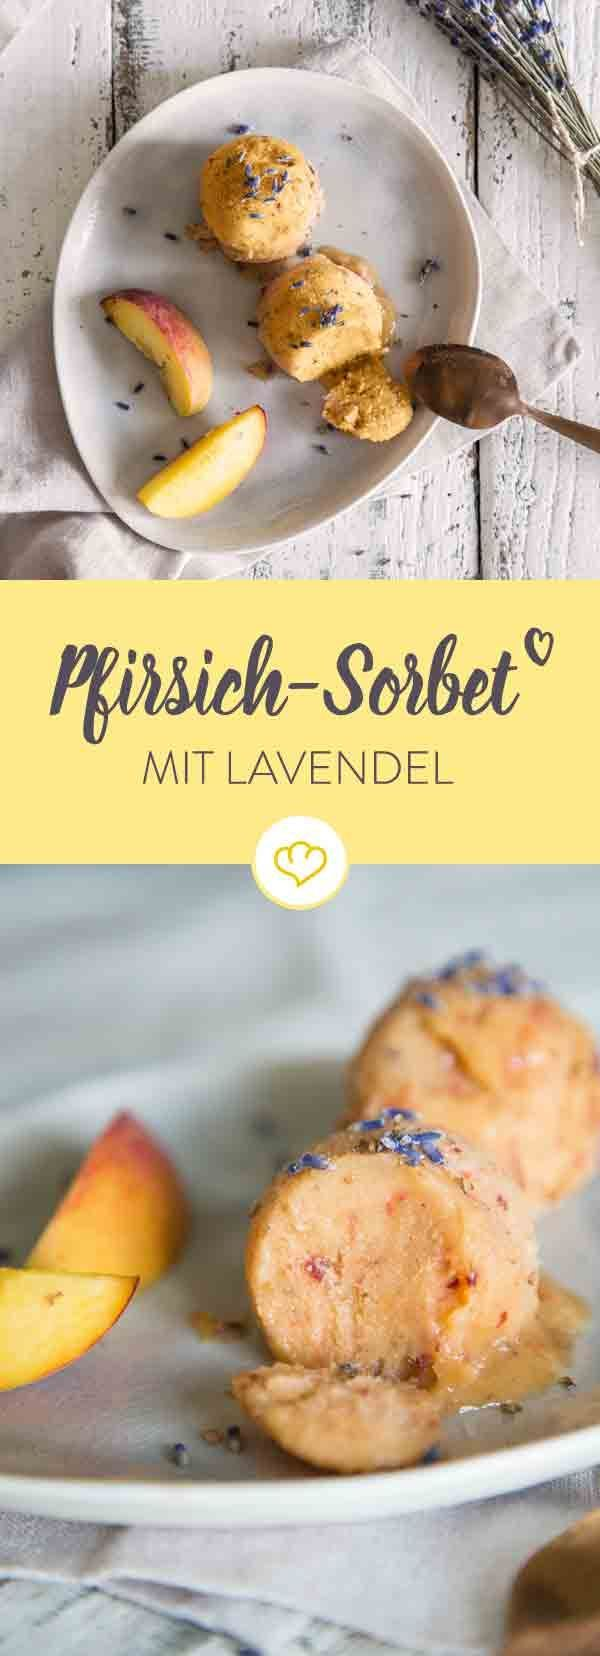 pfirsich sorbet mit lavendelbl ten rezept mahlzeiten pinterest eismaschine pfirsiche. Black Bedroom Furniture Sets. Home Design Ideas